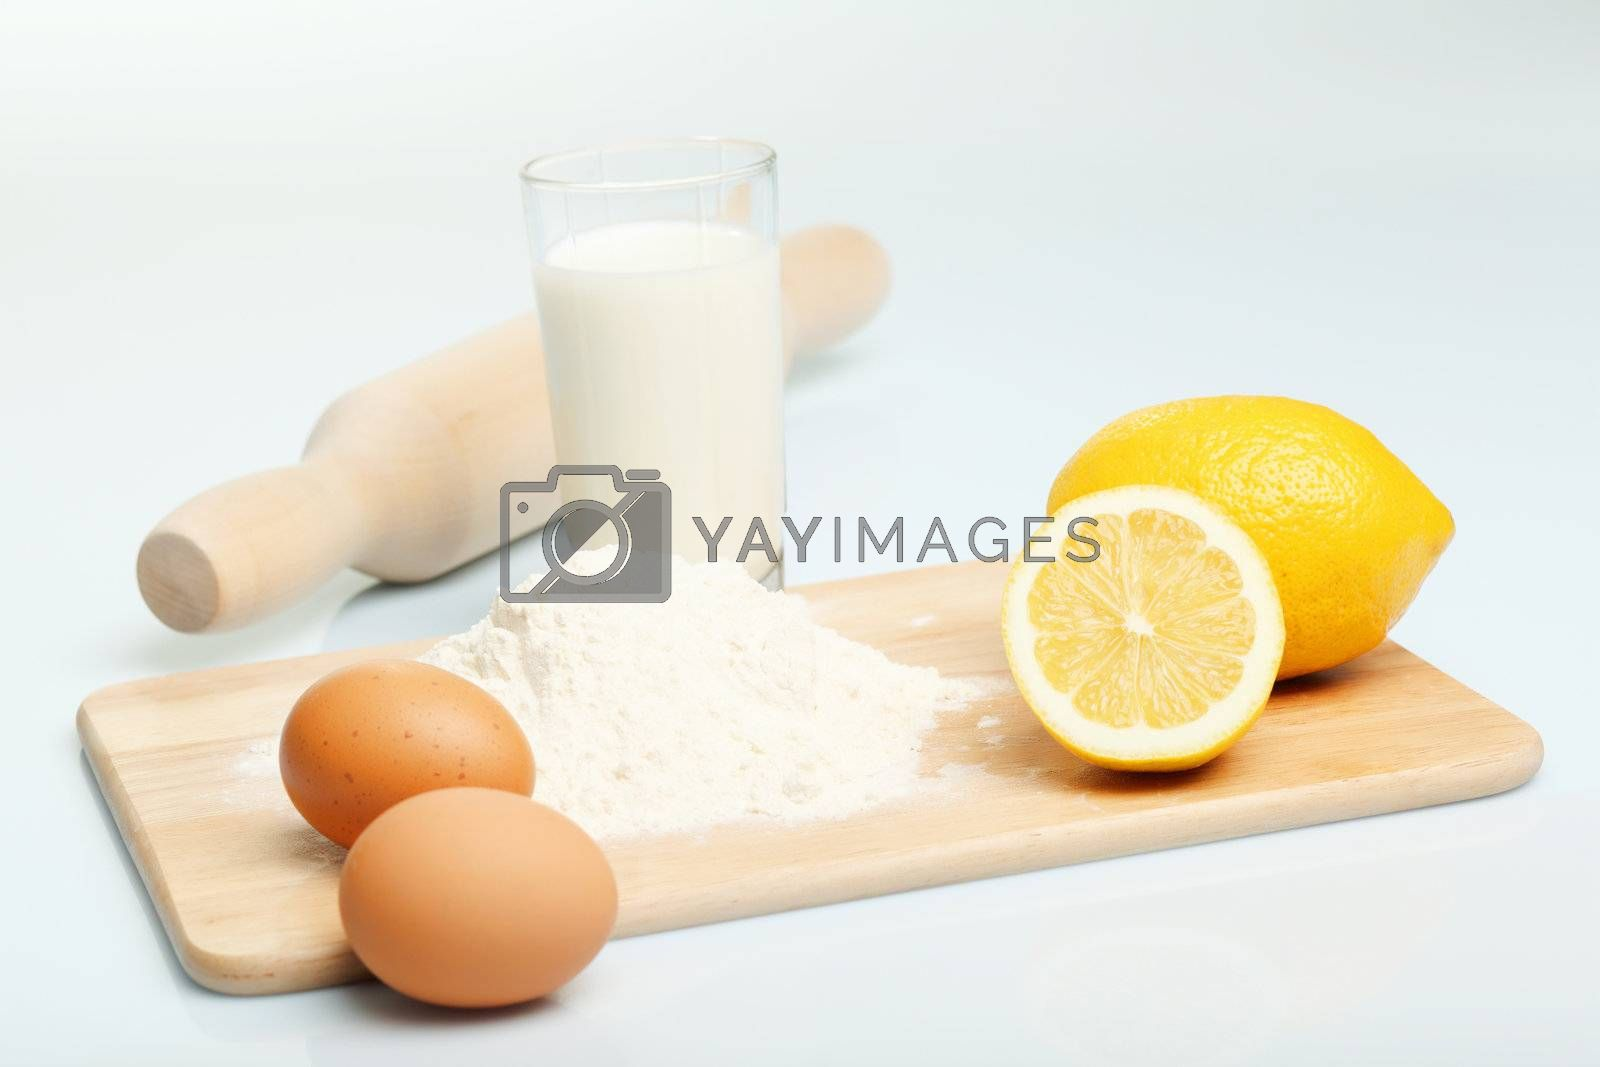 Different products to make bread by Sergey Nivens